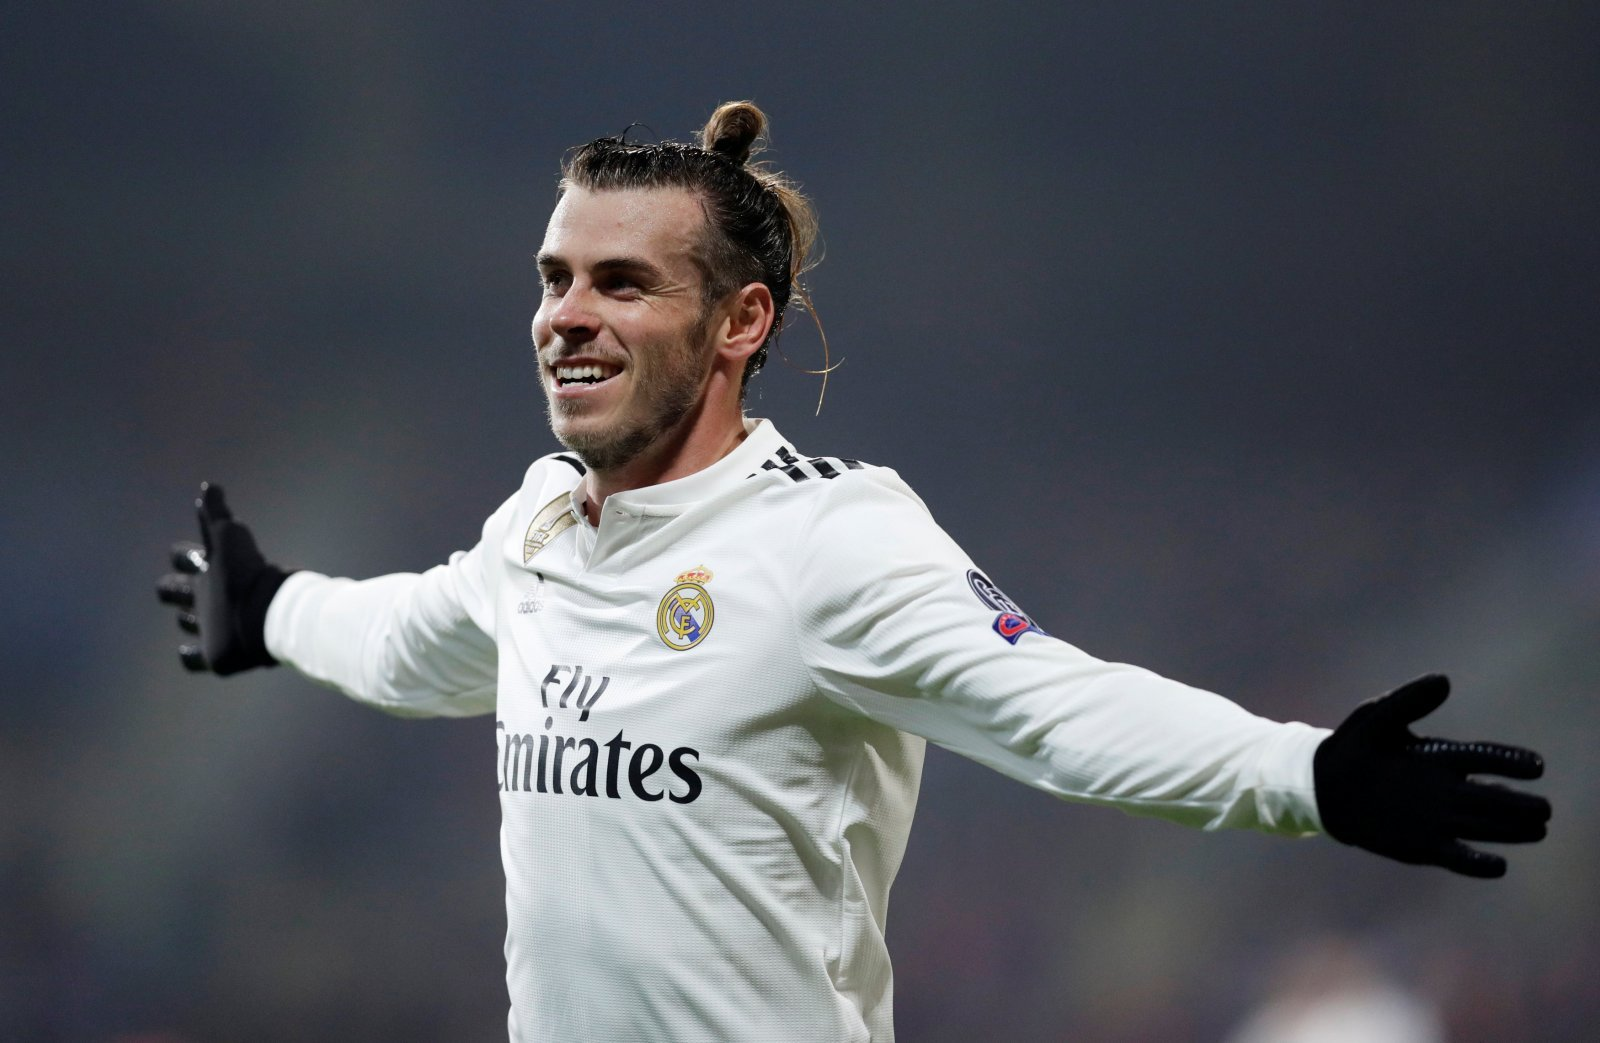 Manchester United have to act to snap up Real Madrid star following latest update